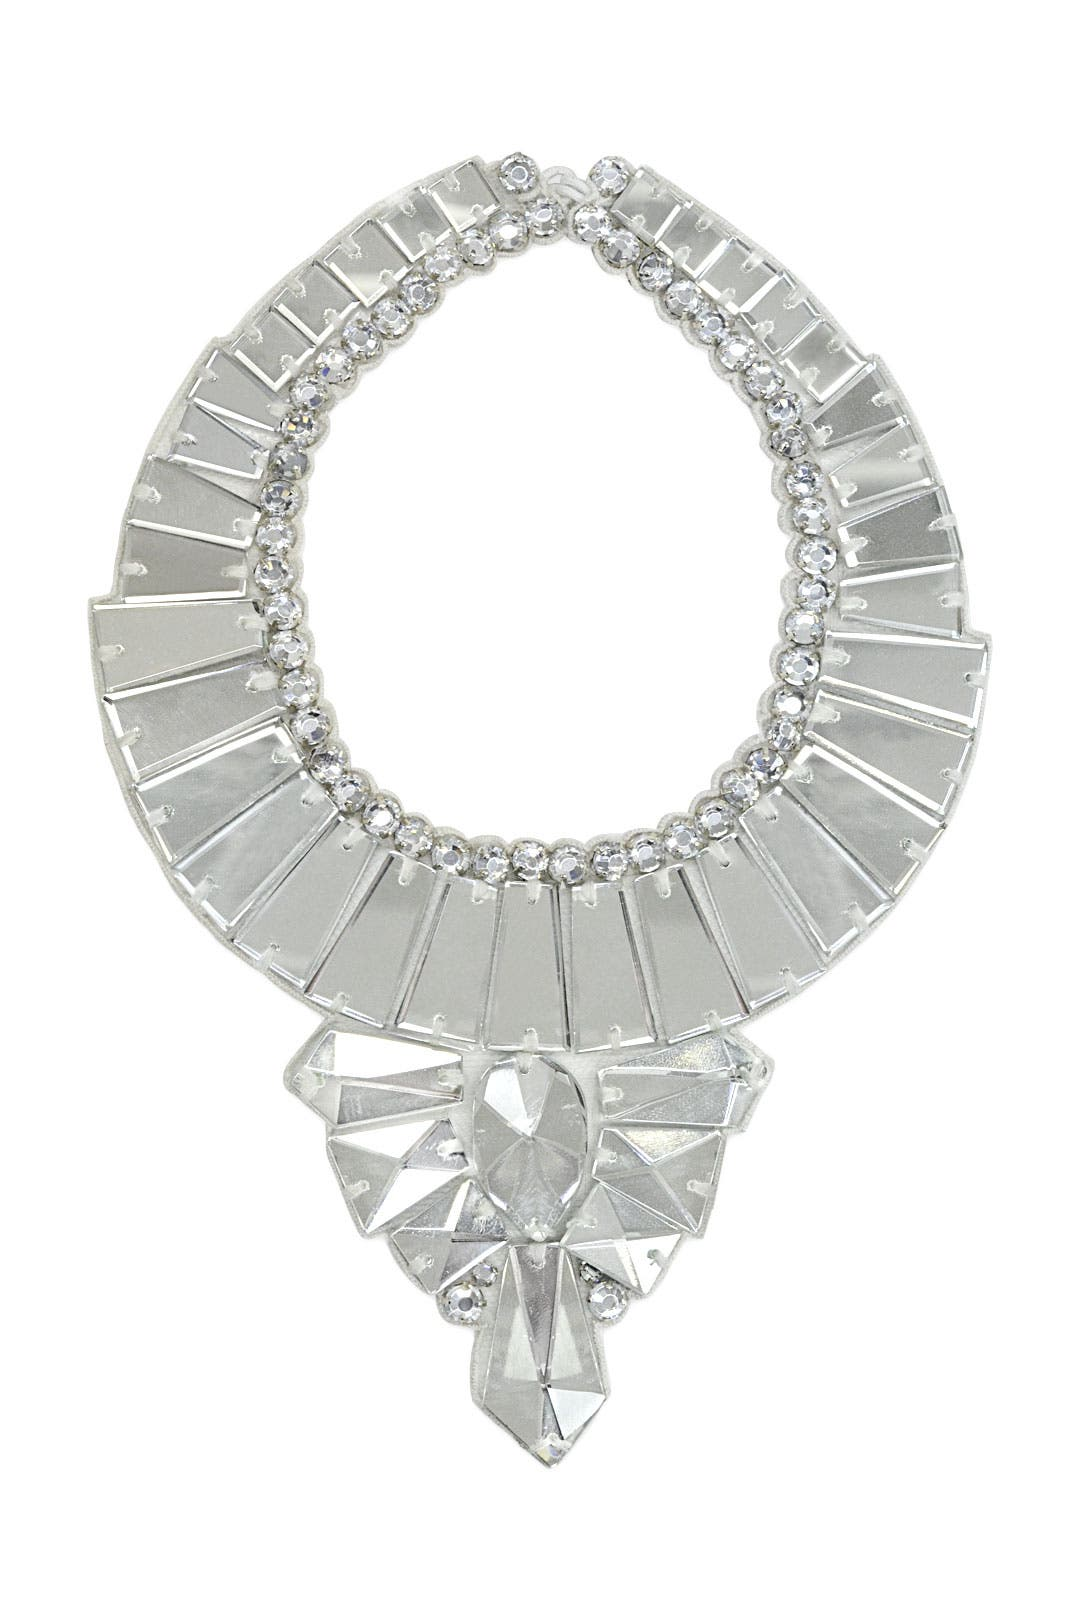 Reflecting Pool Necklace by Ranjana Khan